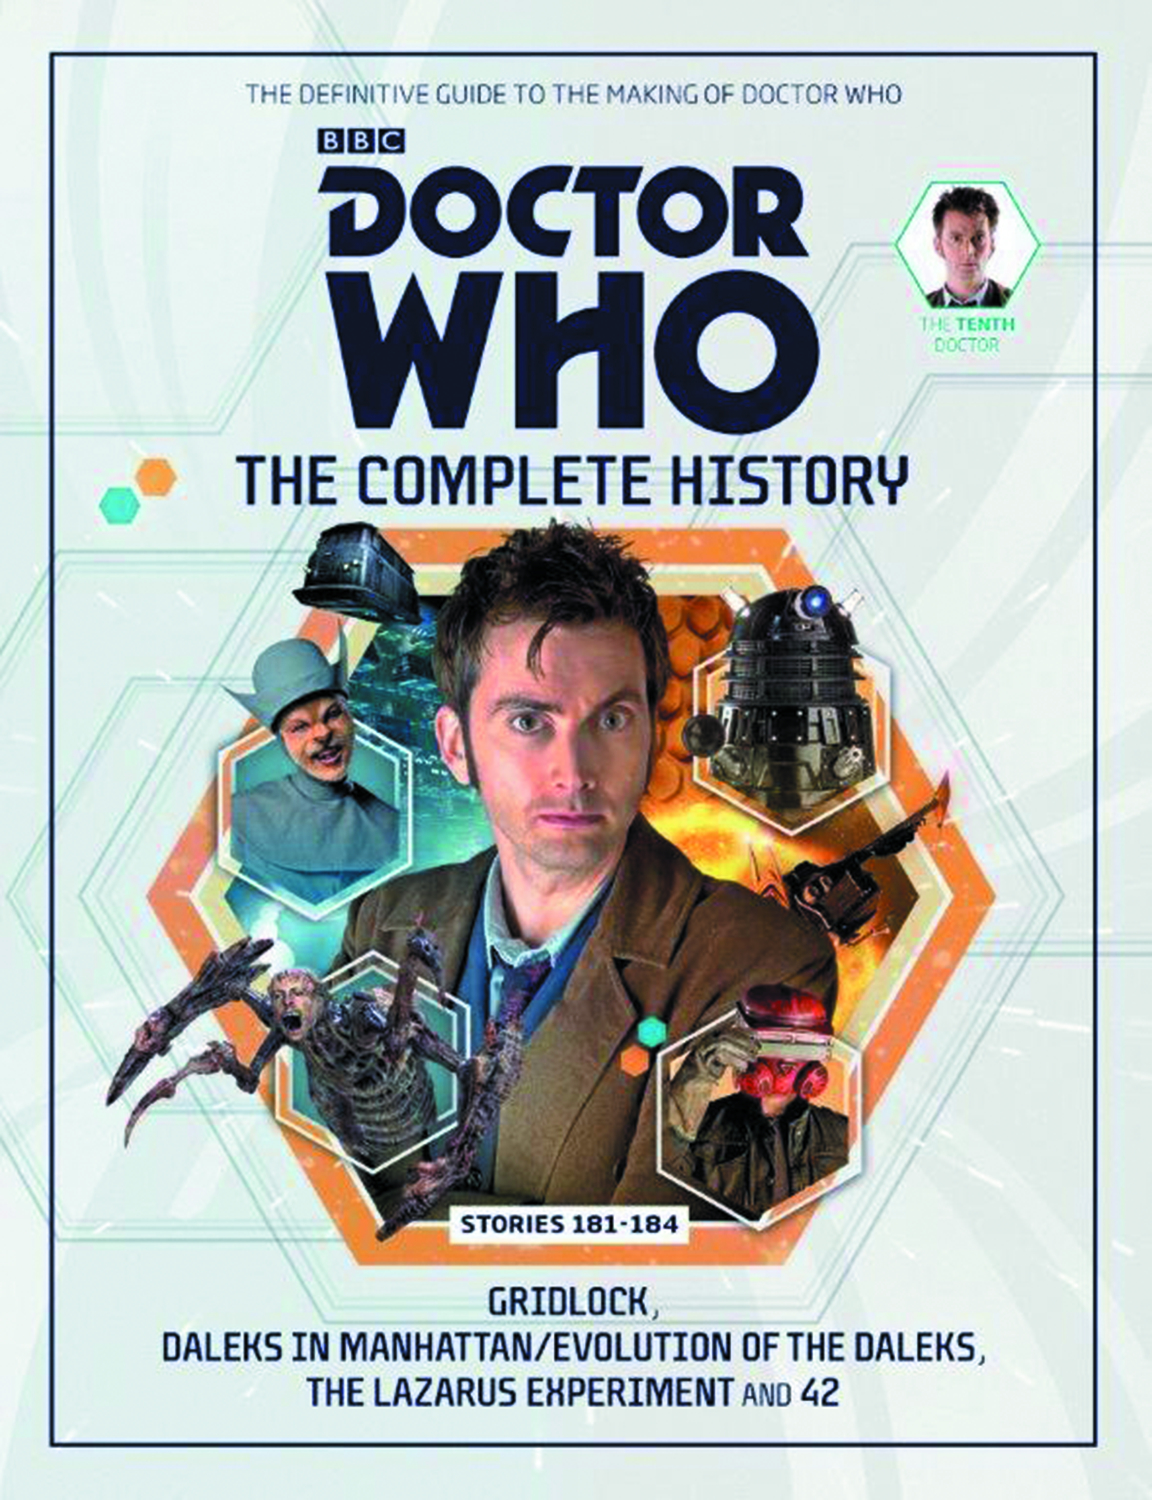 DOCTOR WHO COMP HIST HC VOL 01 10TH DOCTOR STORIES 181-184